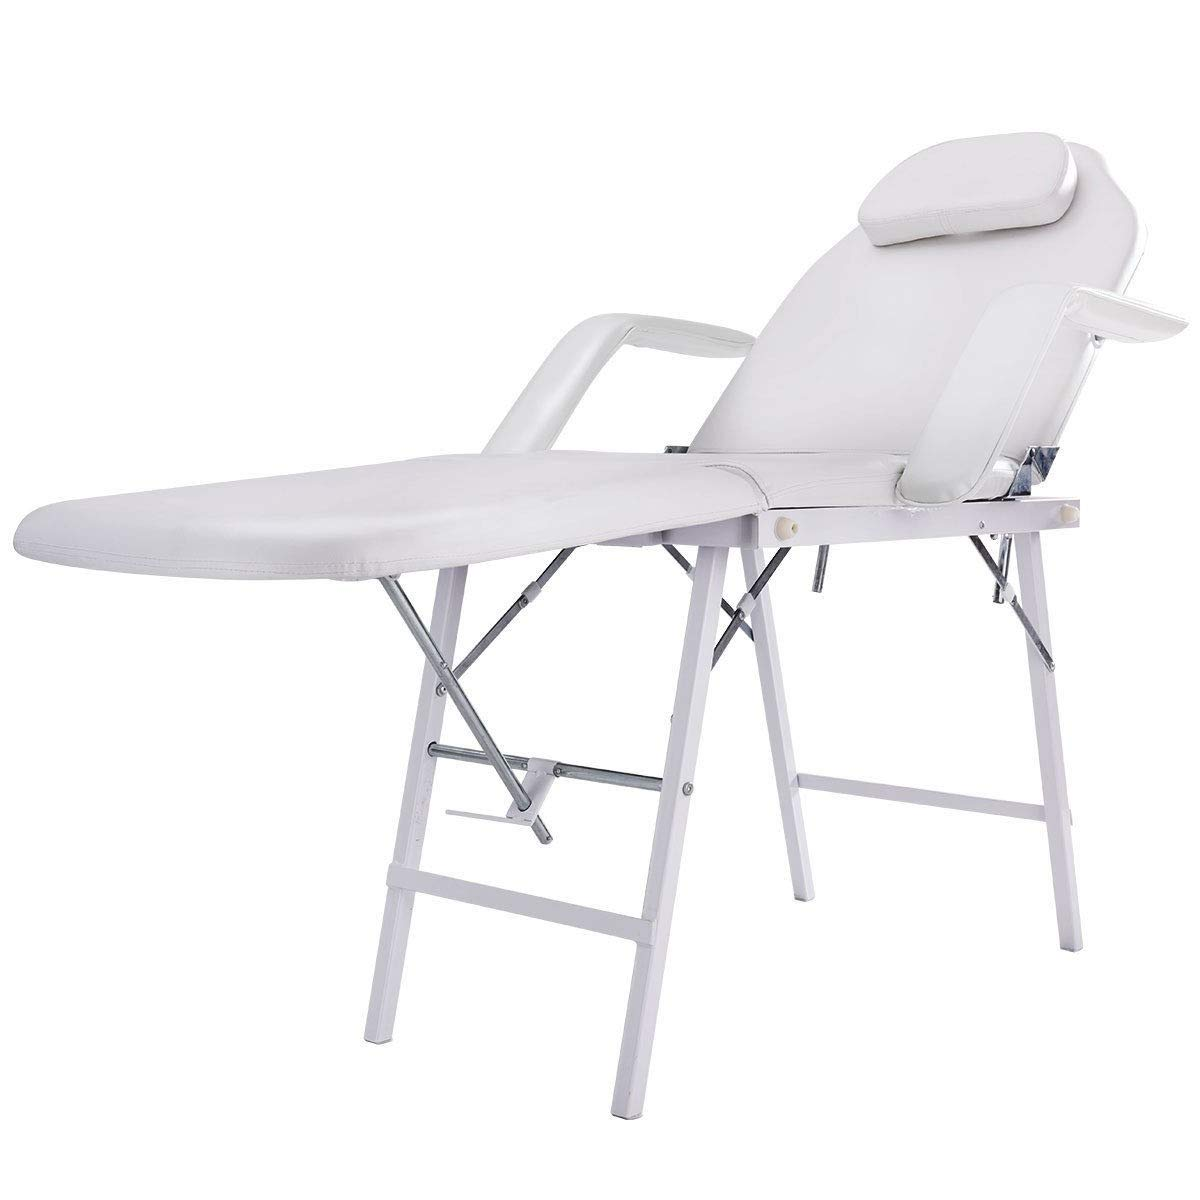 73''L Portable Adjustable Massage Table Chair Couch for Salon Beauty Physiotherapy Facial SPA Tattoo Household by SAFEPLUS (Image #3)